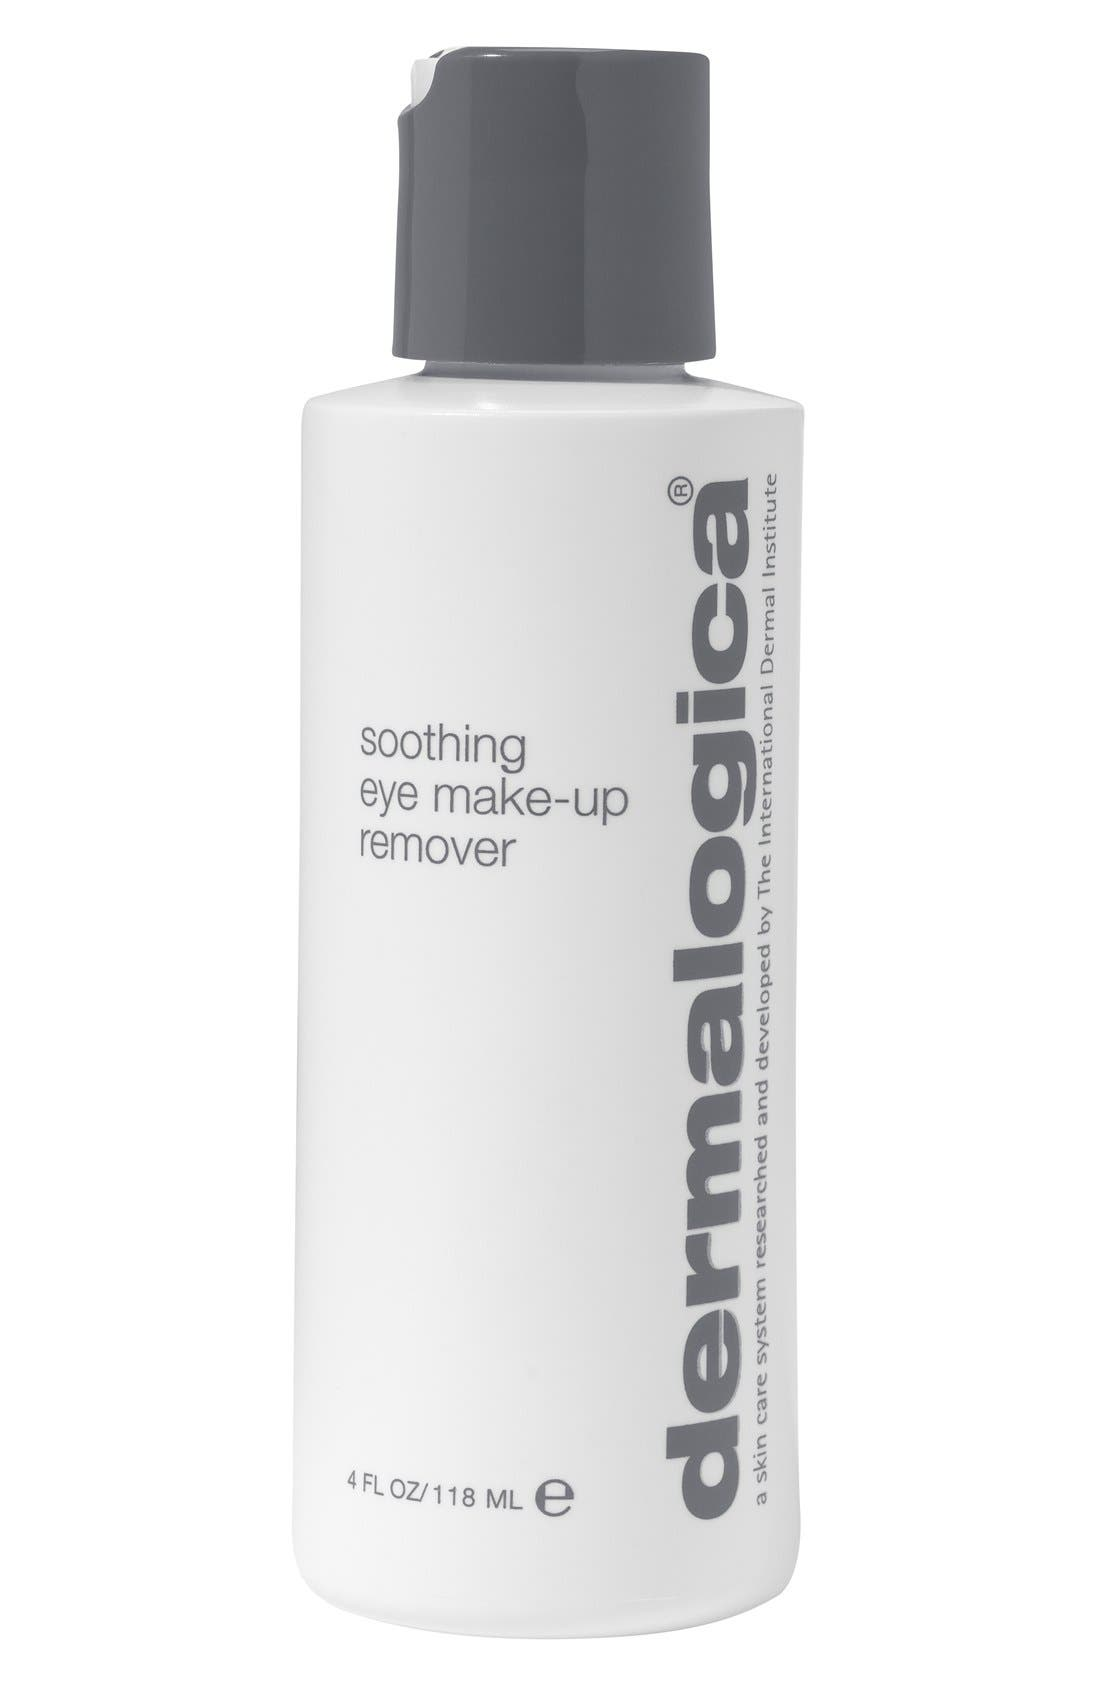 dermalogica® Soothing Eye Makeup Remover